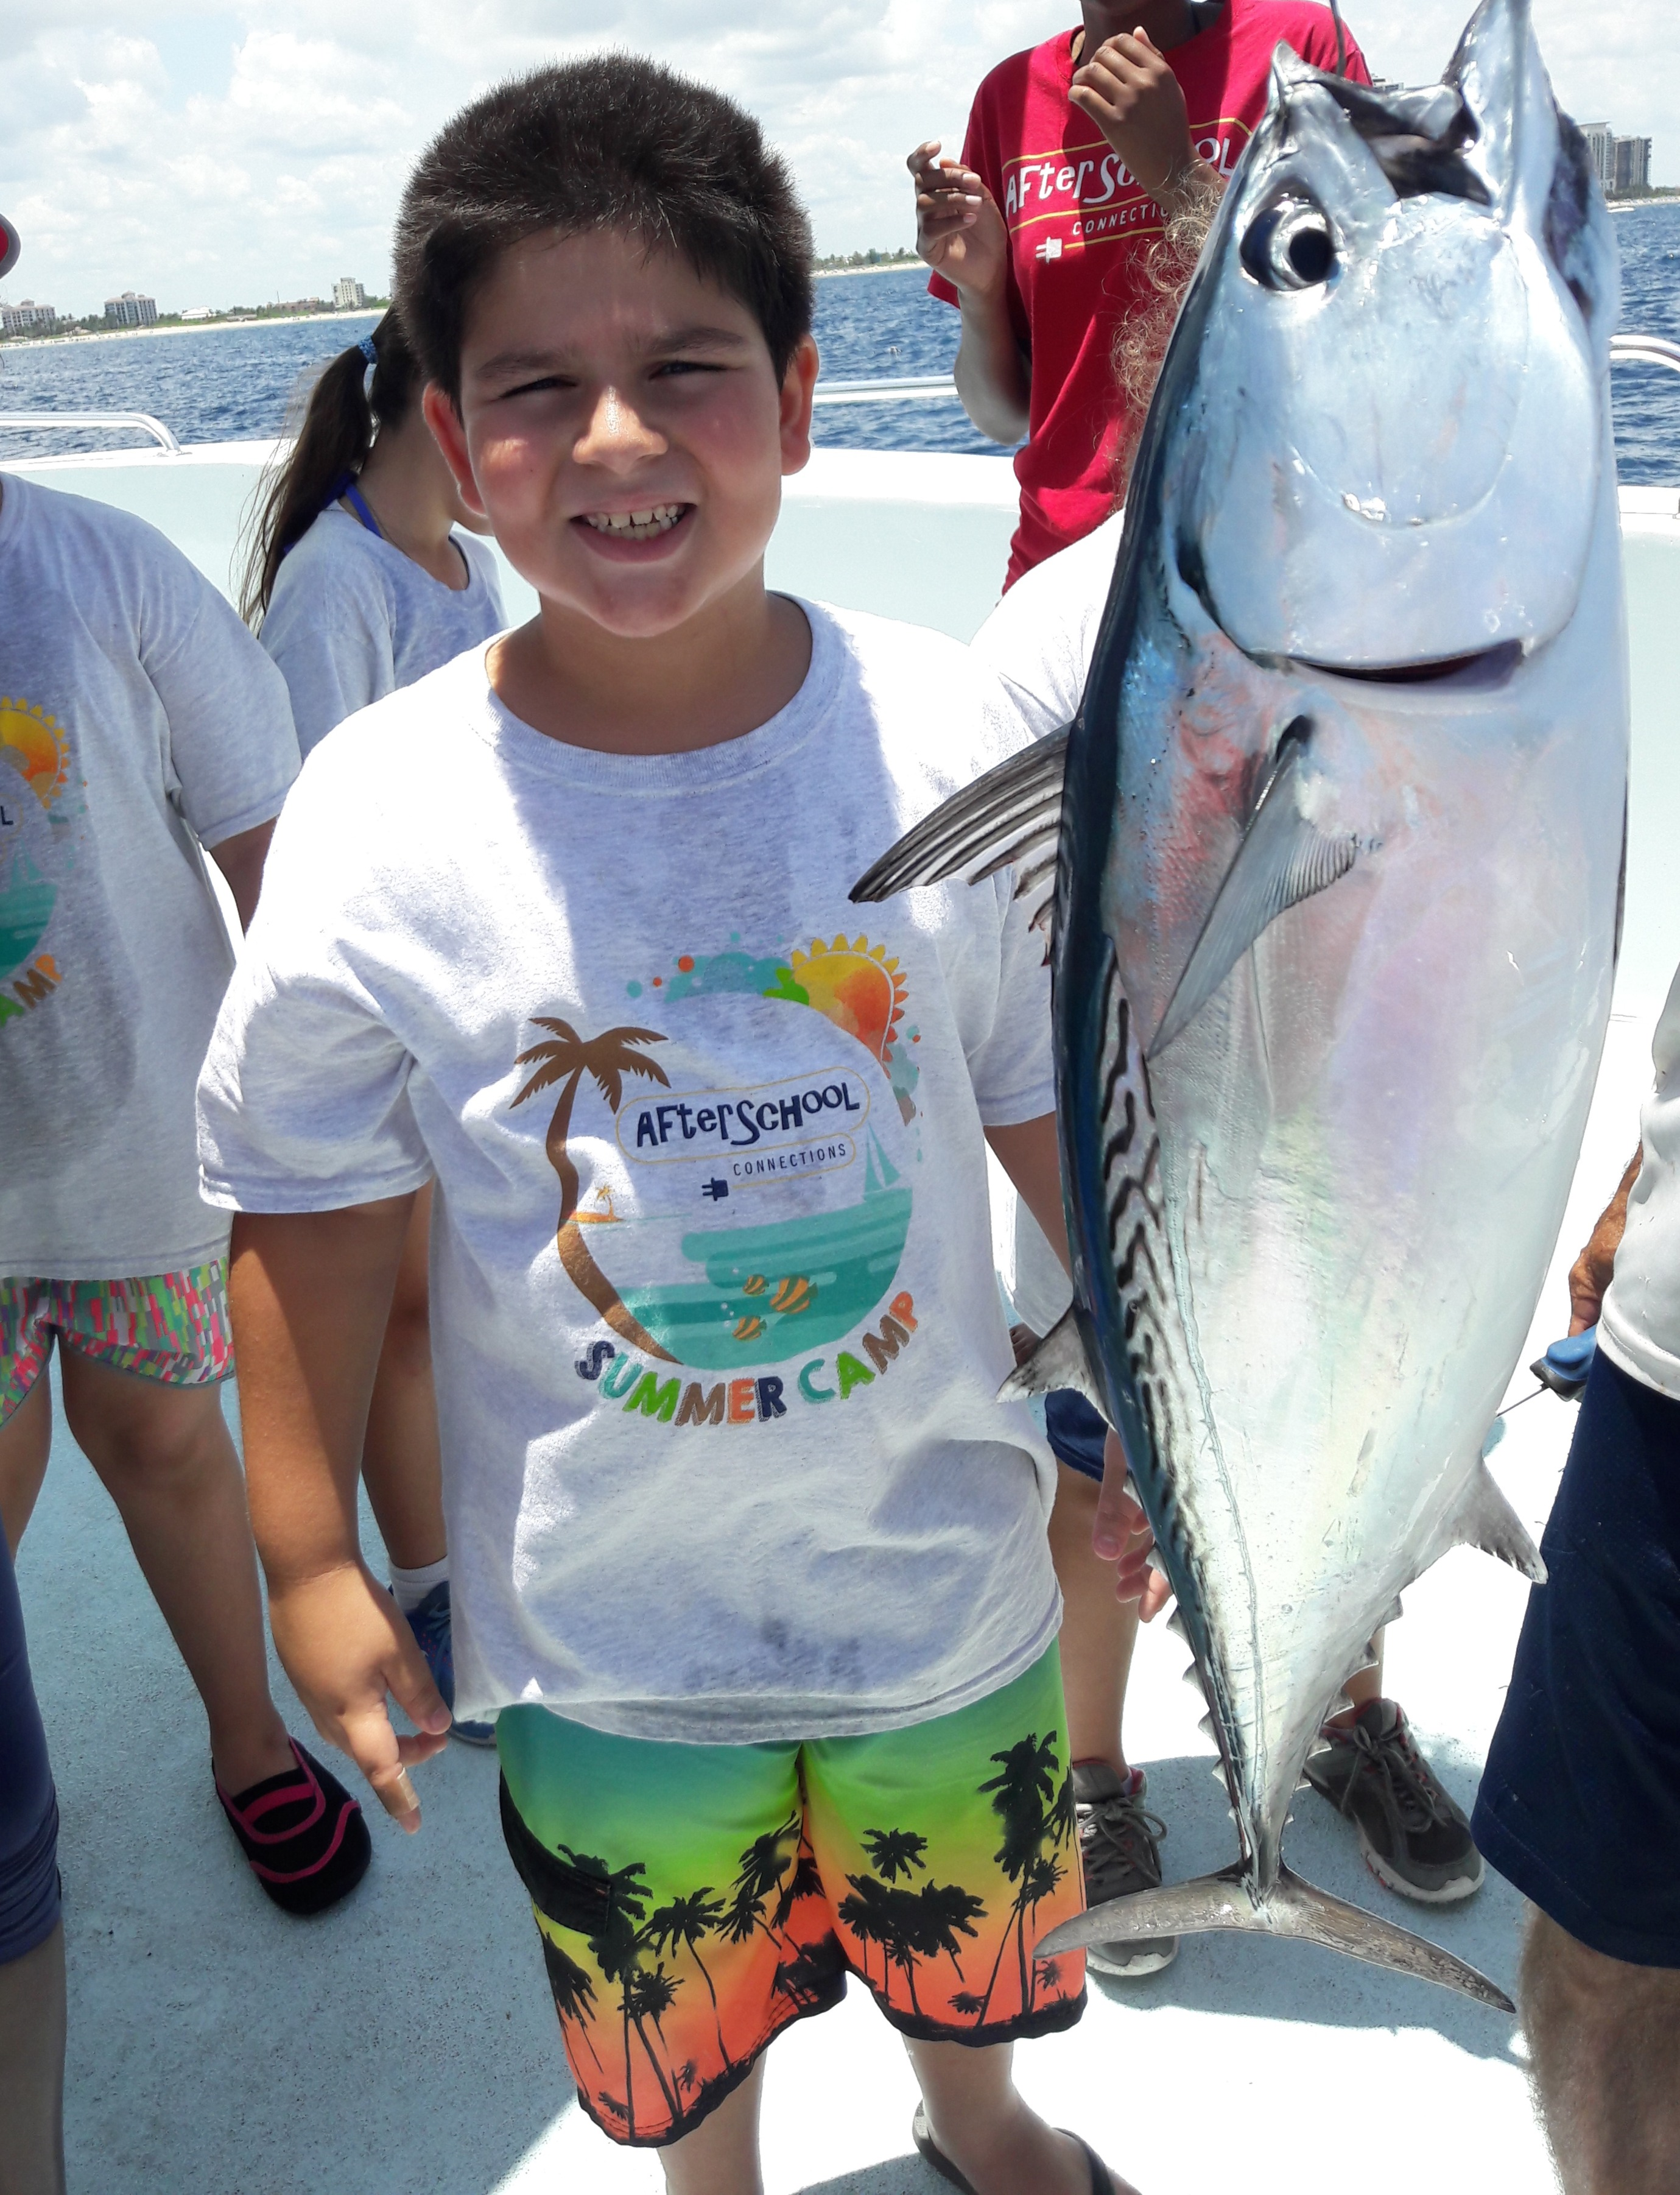 Florida Fishing Academy Boat Trip Image number 2